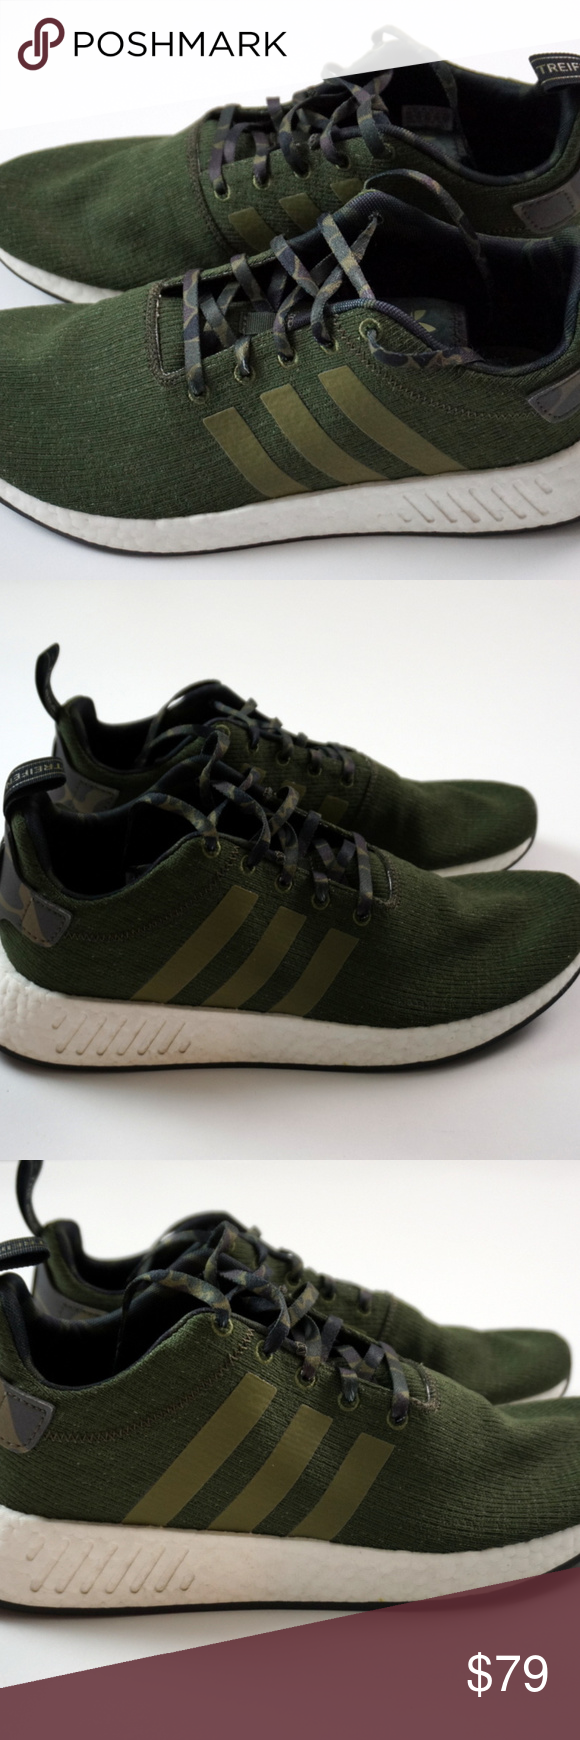 save off a44a9 cf2cd Mens Adidas Nmd Boost R2 Knit Size 11.5 Camo Mens Adidas Nmd ...